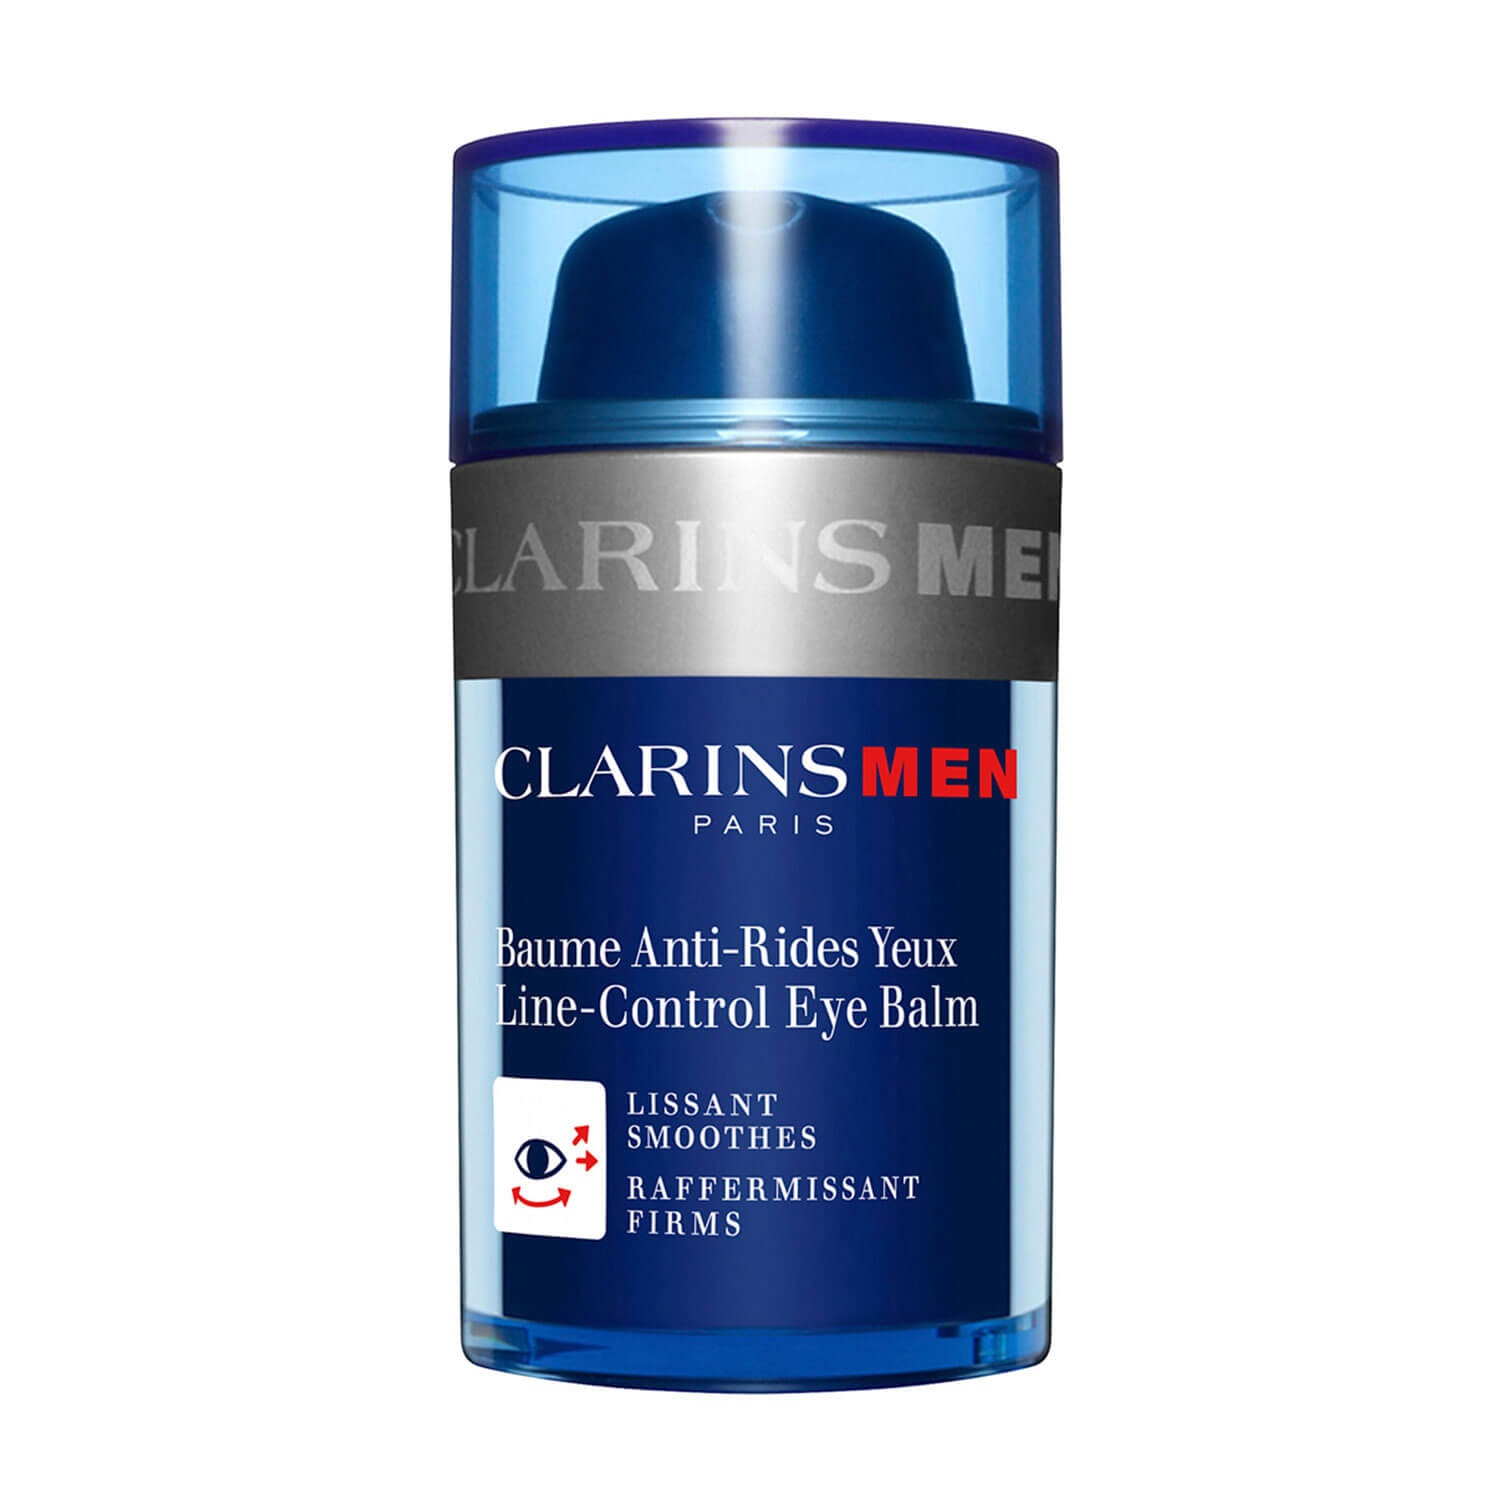 Clarins Men - Line Control Eye Balm